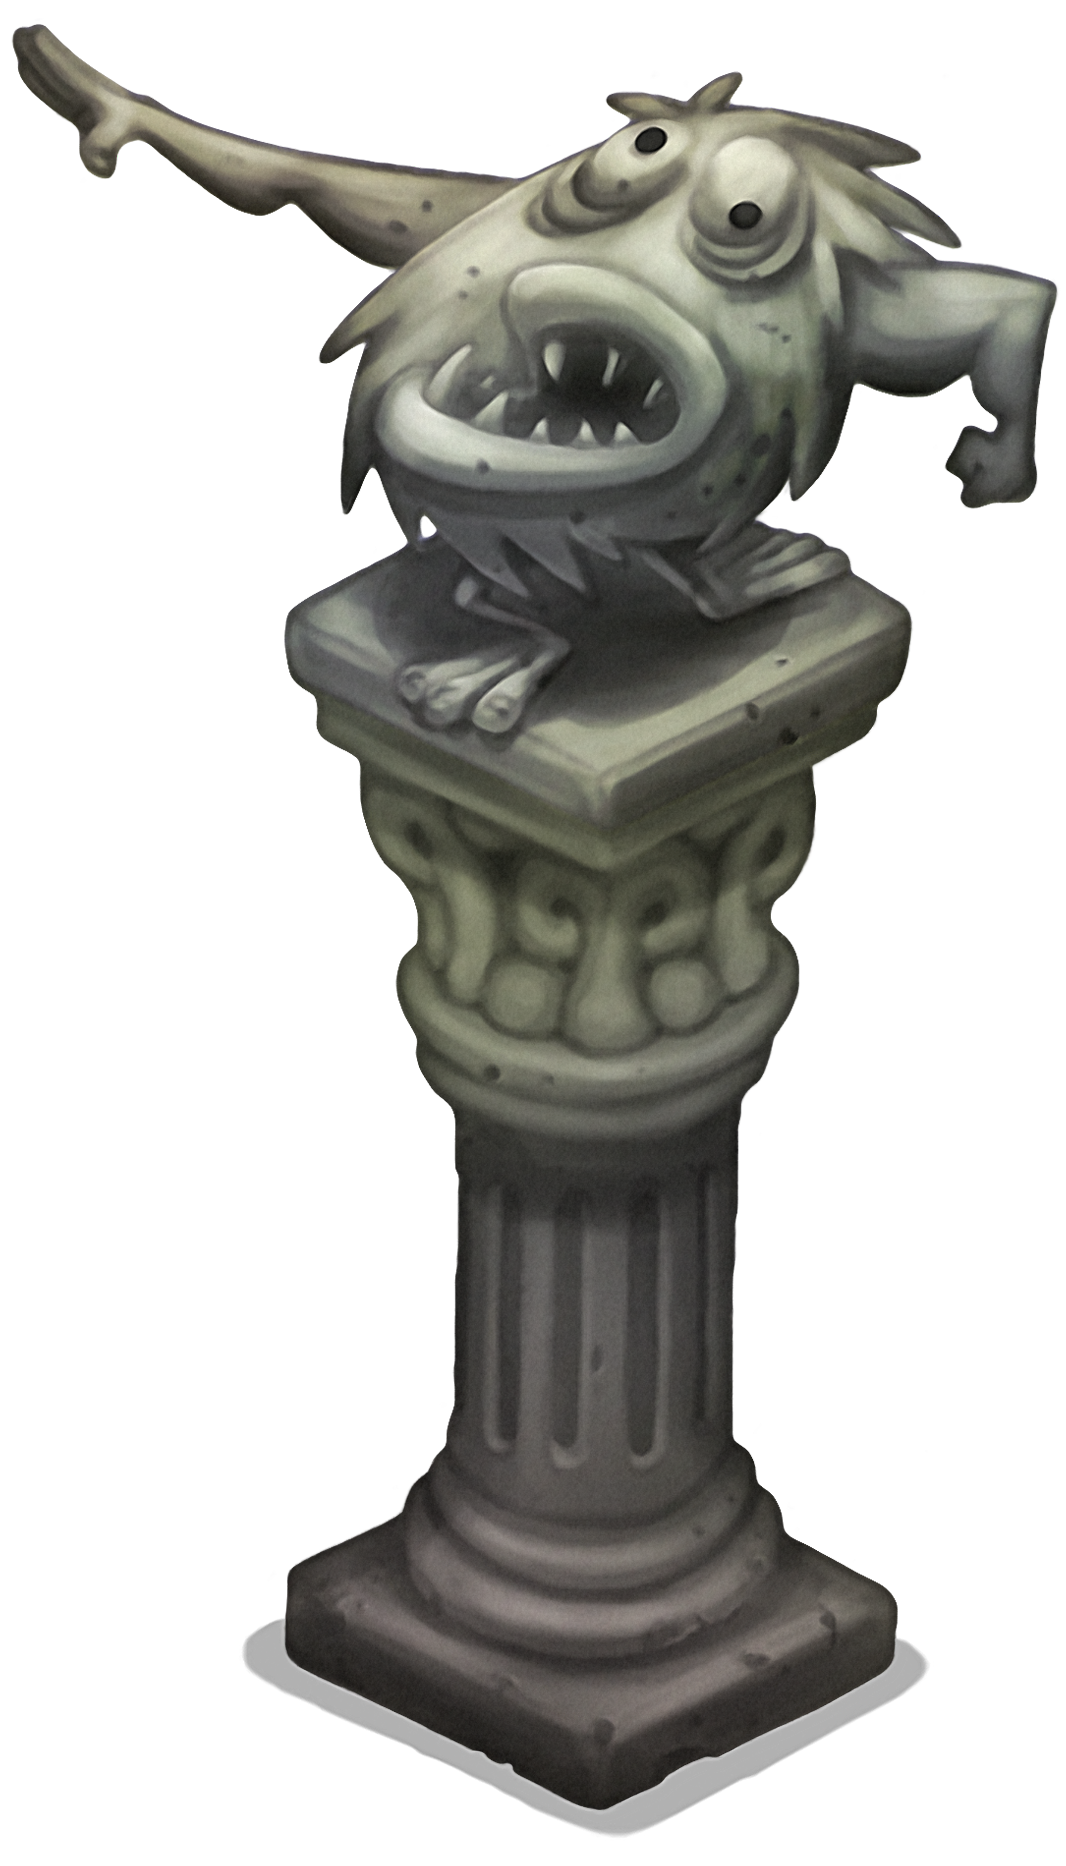 Statue podium png. Barbloo my singing monsters